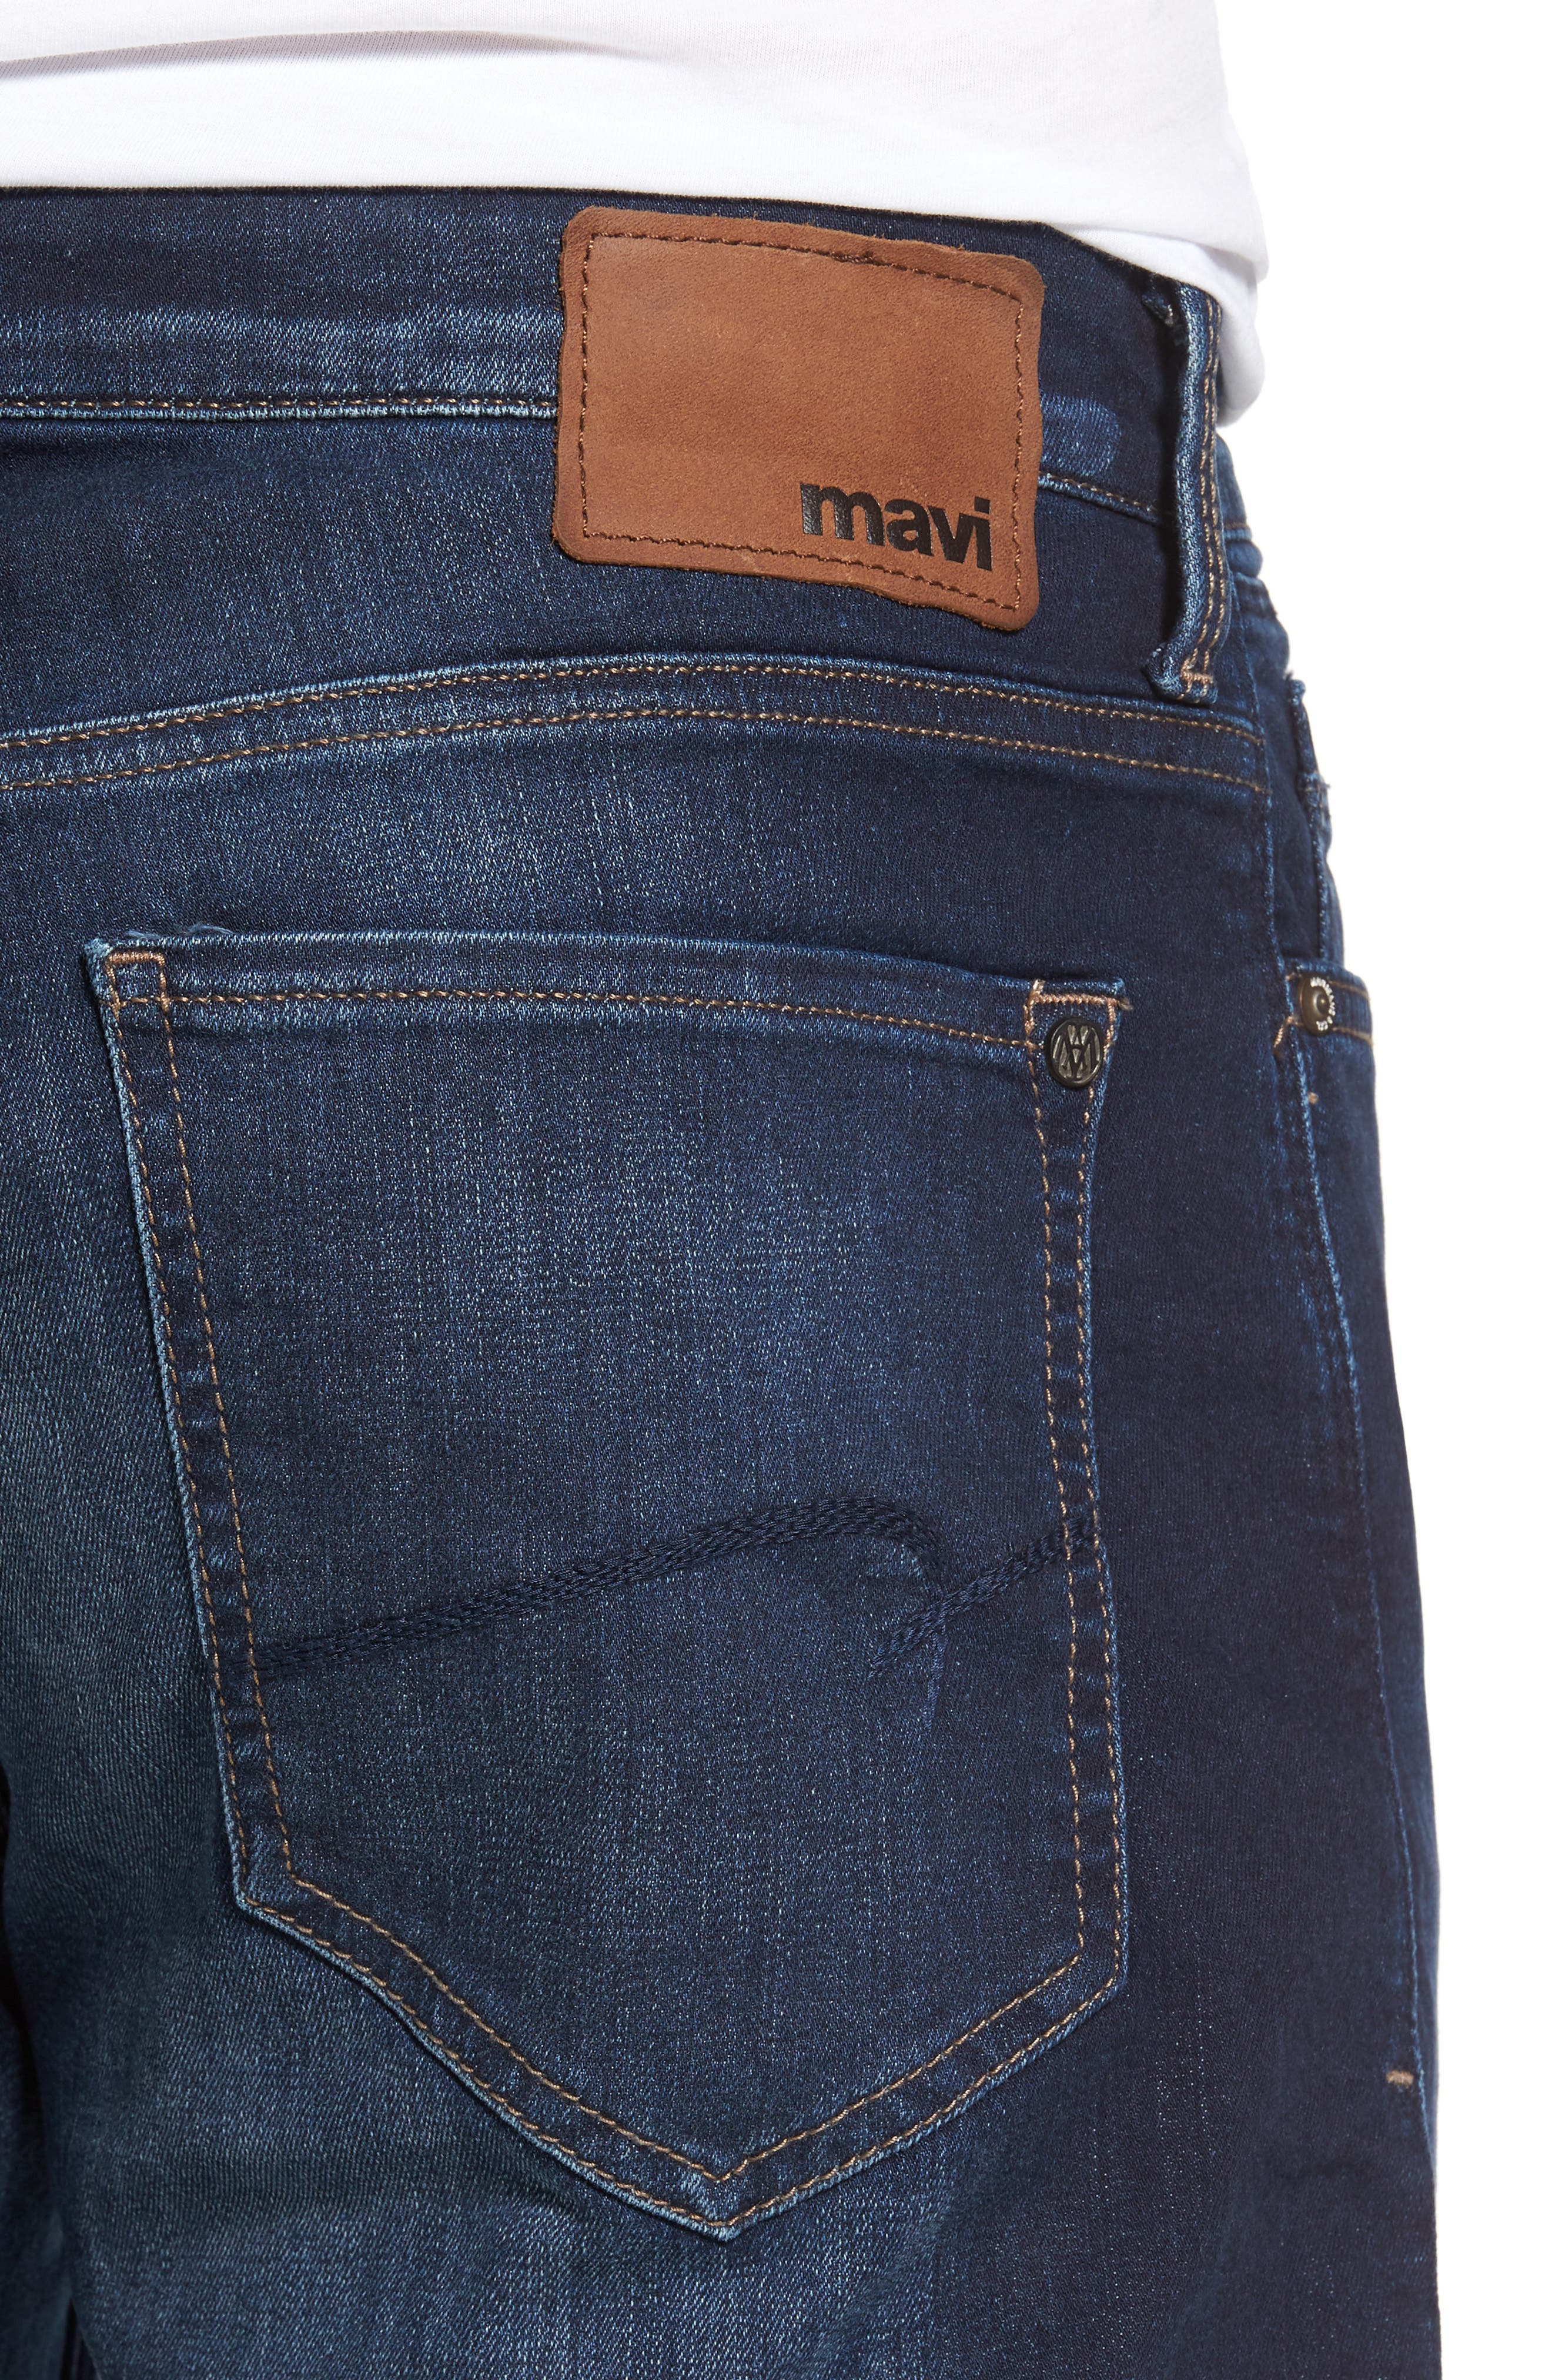 'Max' Relaxed Fit Jeans,                             Alternate thumbnail 4, color,                             DARK WILLIAMSBURG